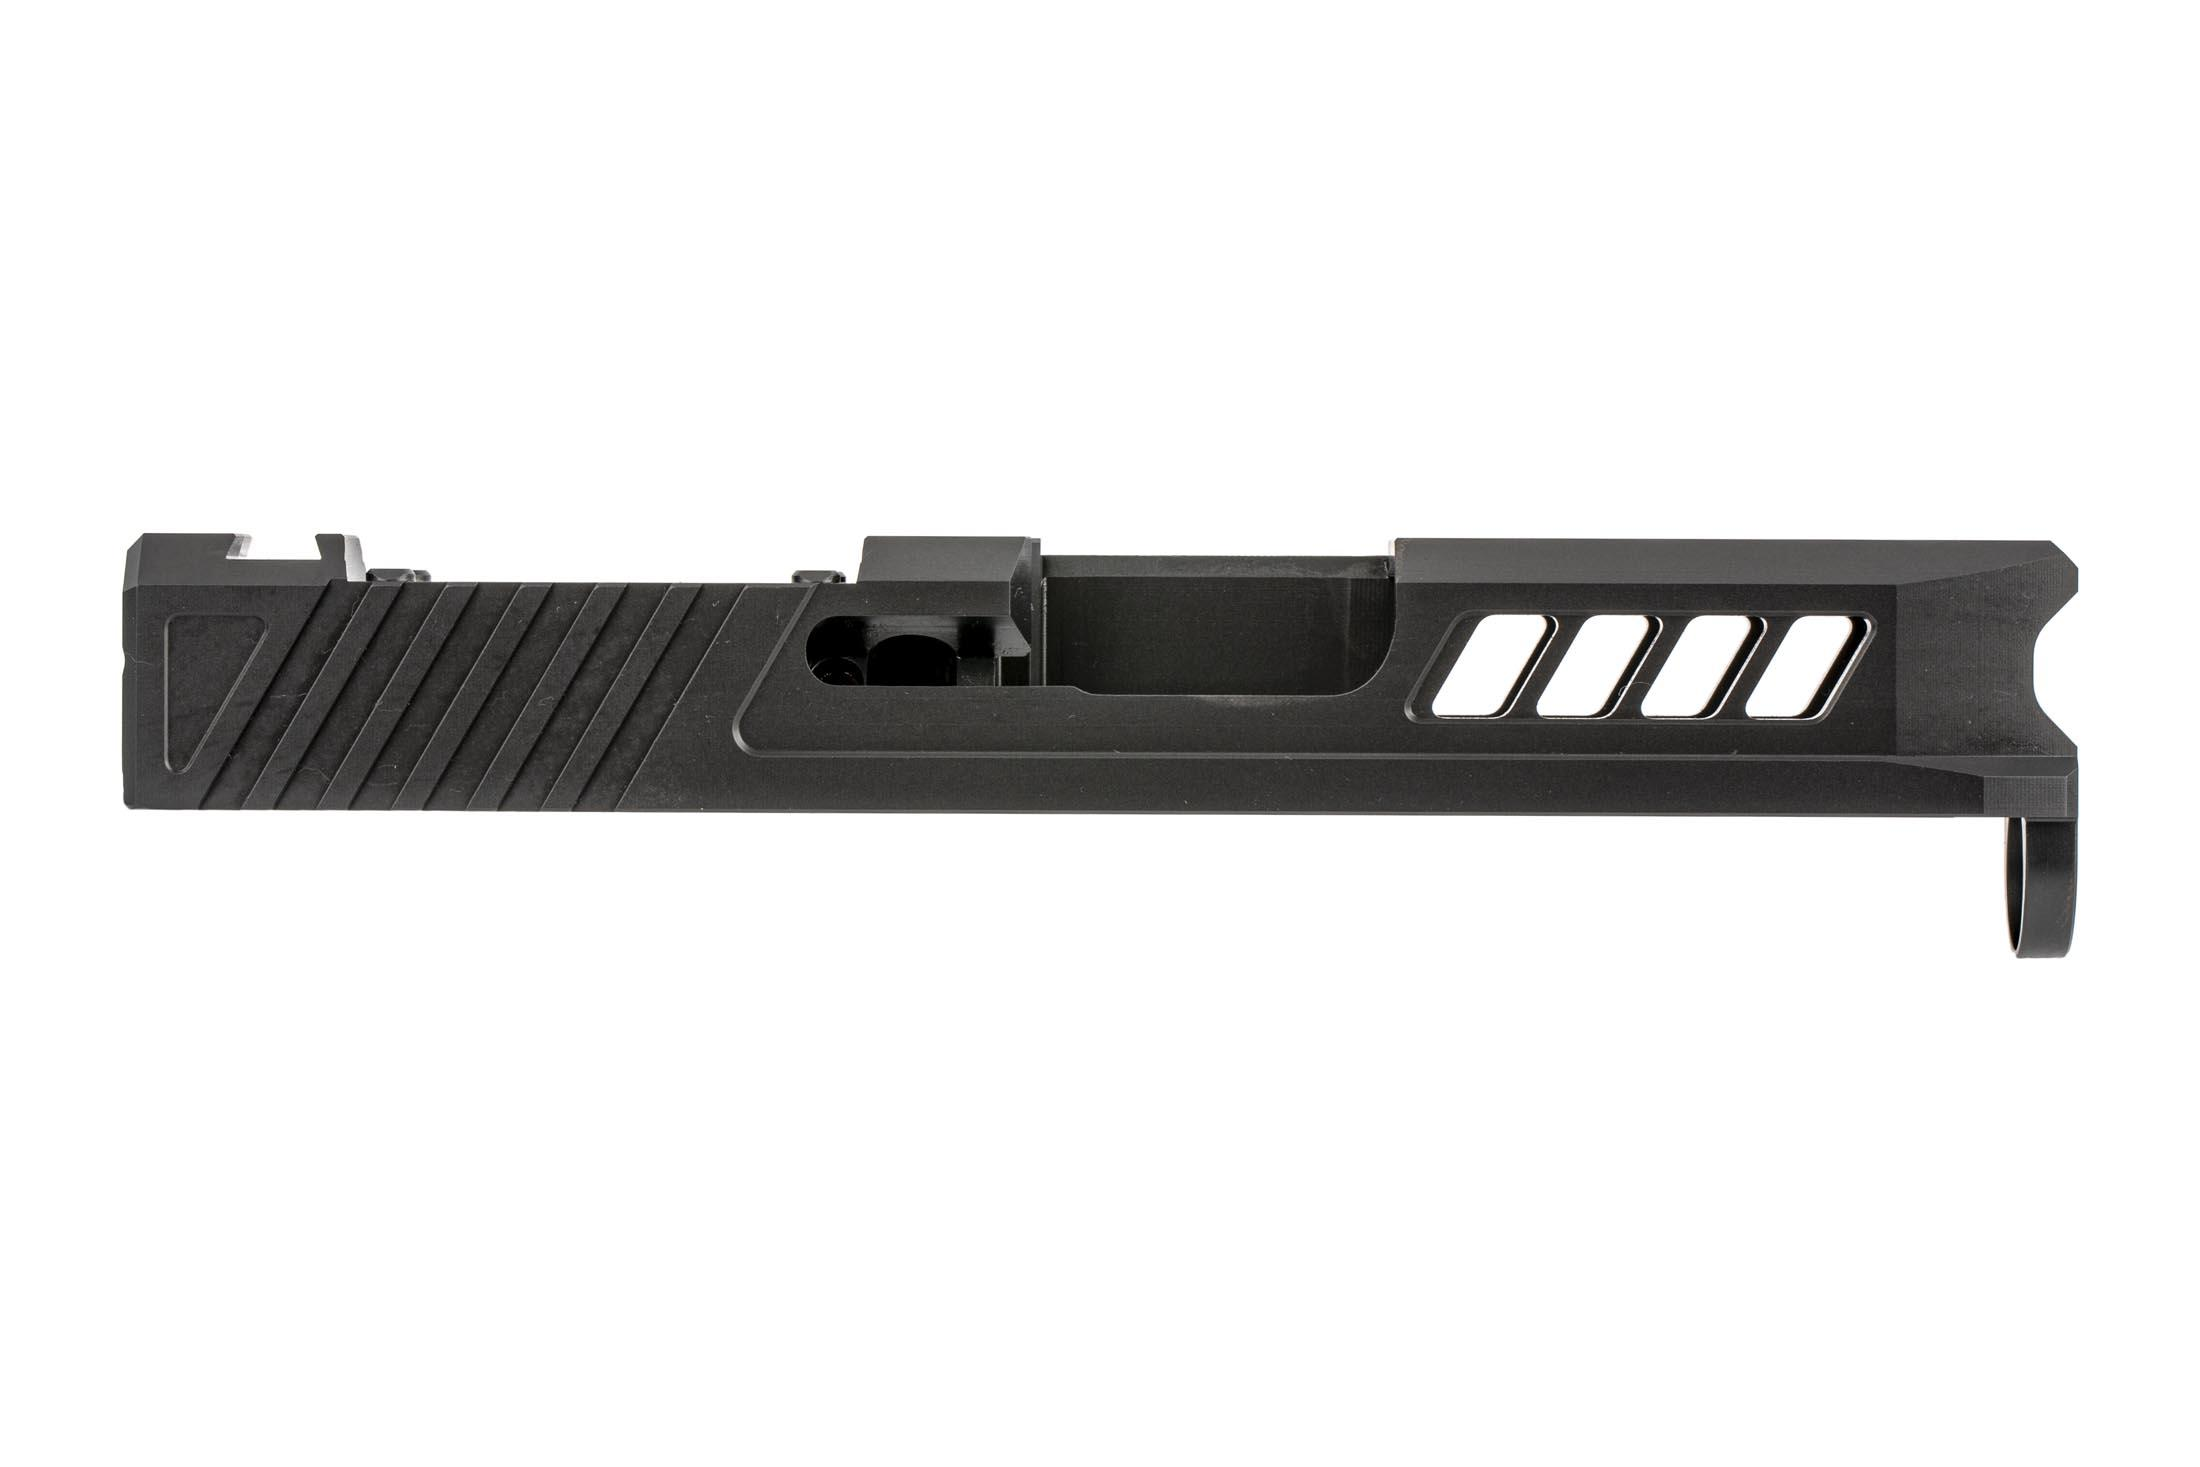 TRUE Precision RMSc optic cut AXIOM glock slide features top and side cut windows for reduced mass on G43 and G43x handguns